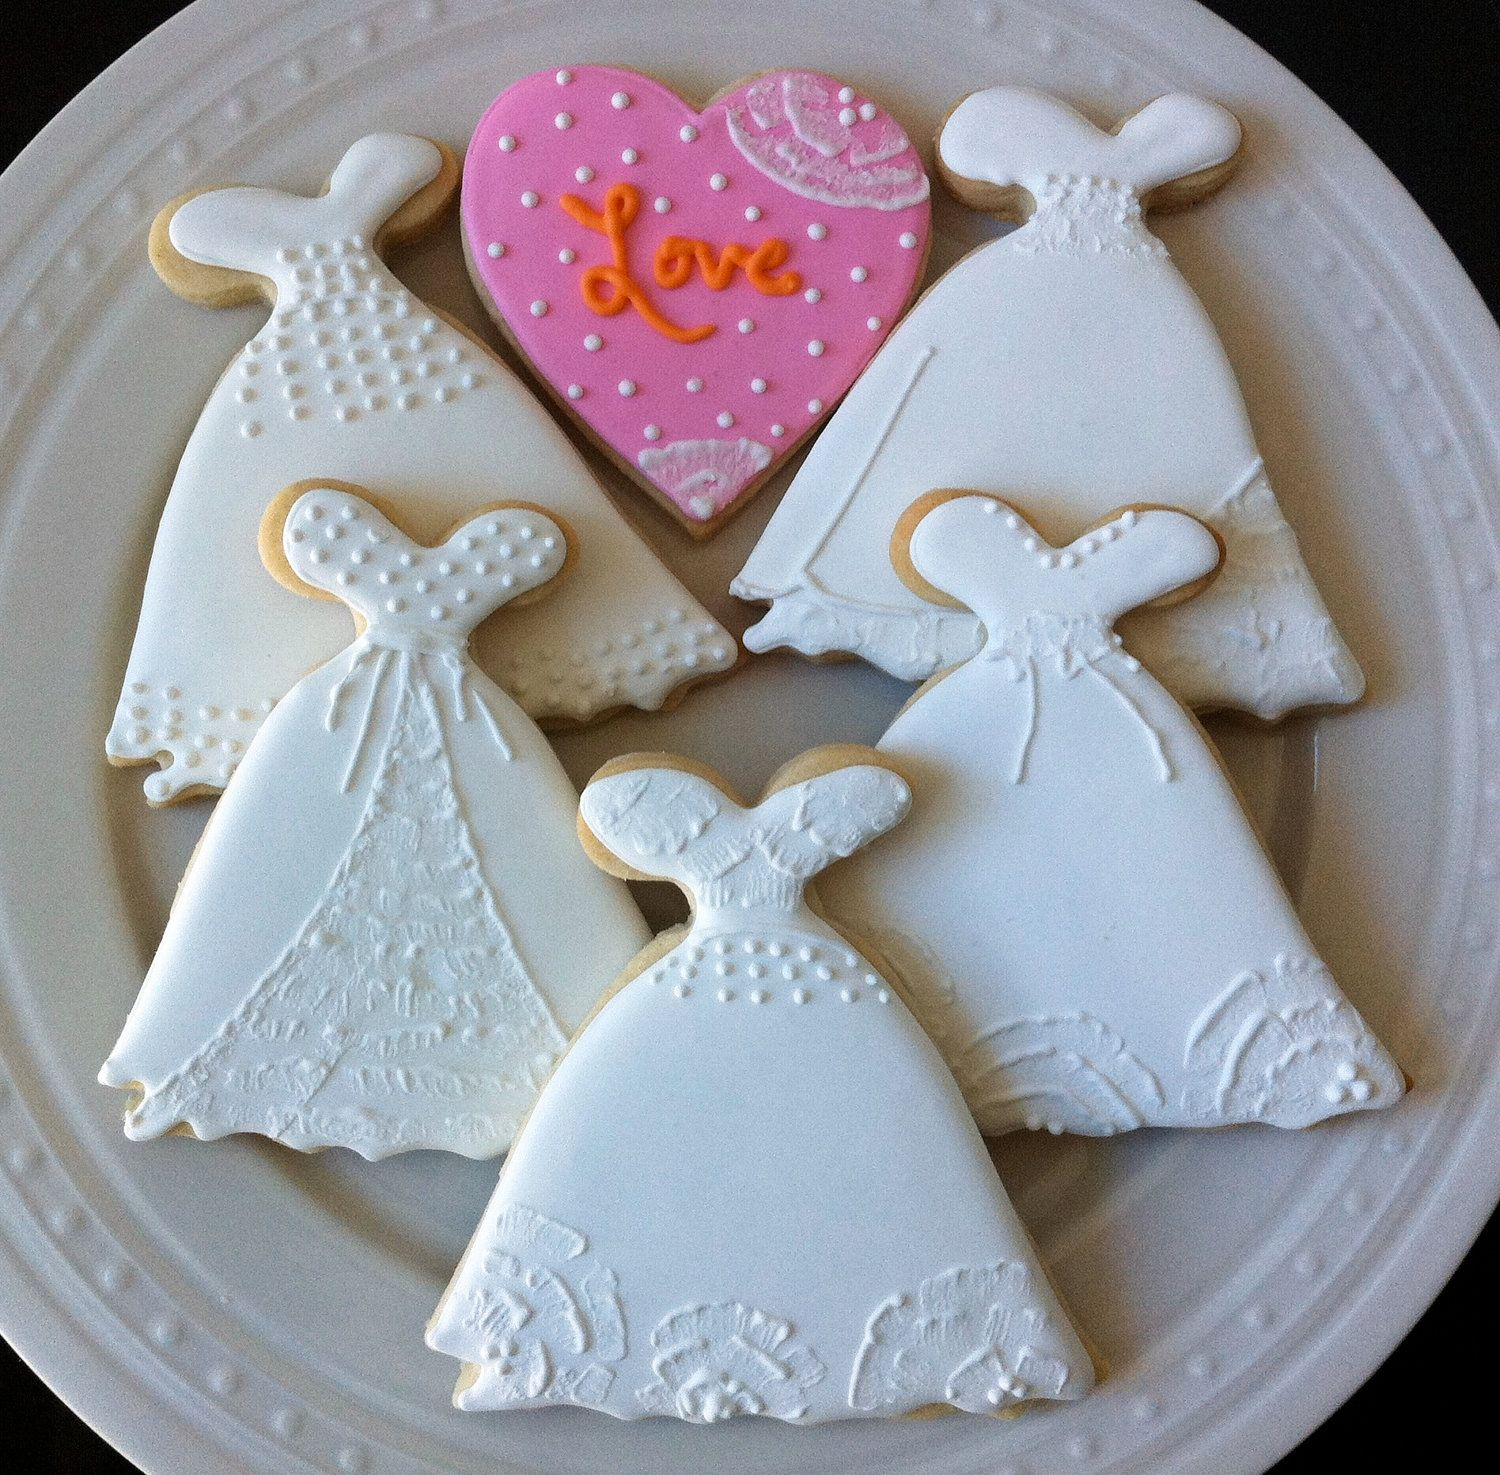 Decorated Wedding Dress Cookies with Love Hearts Perfect